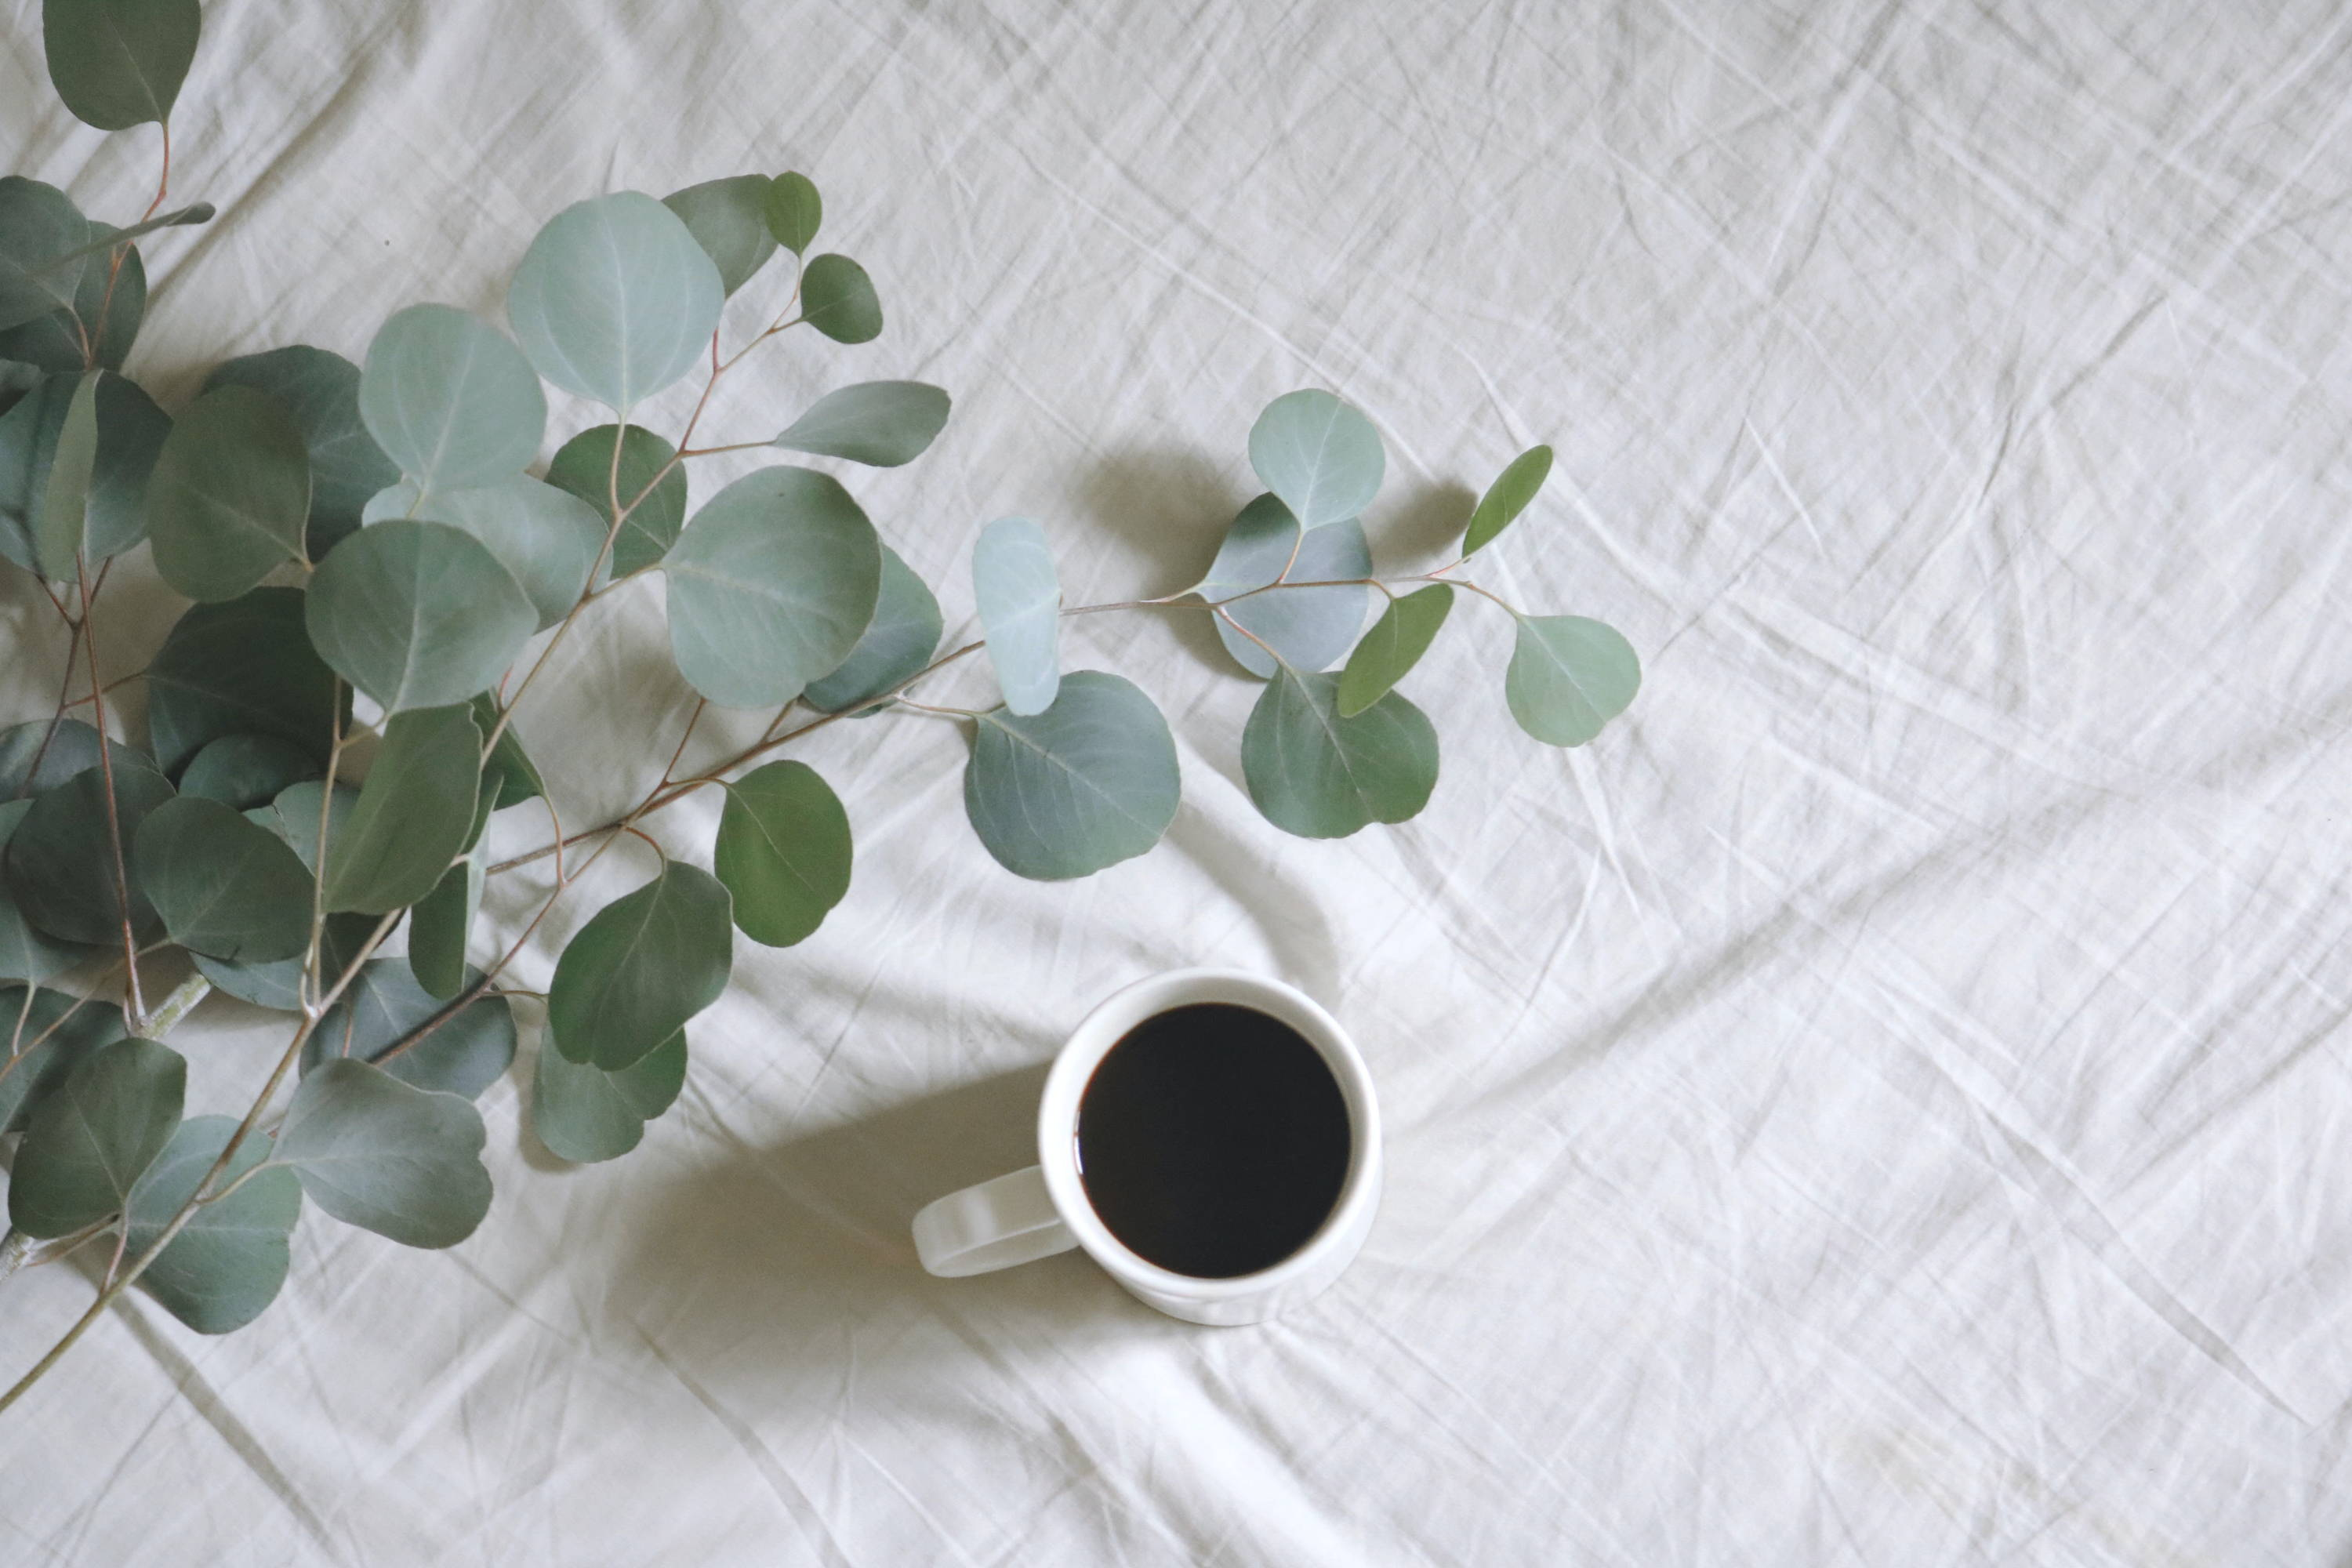 6. Flat lay photography of white mug beside green leafed plants